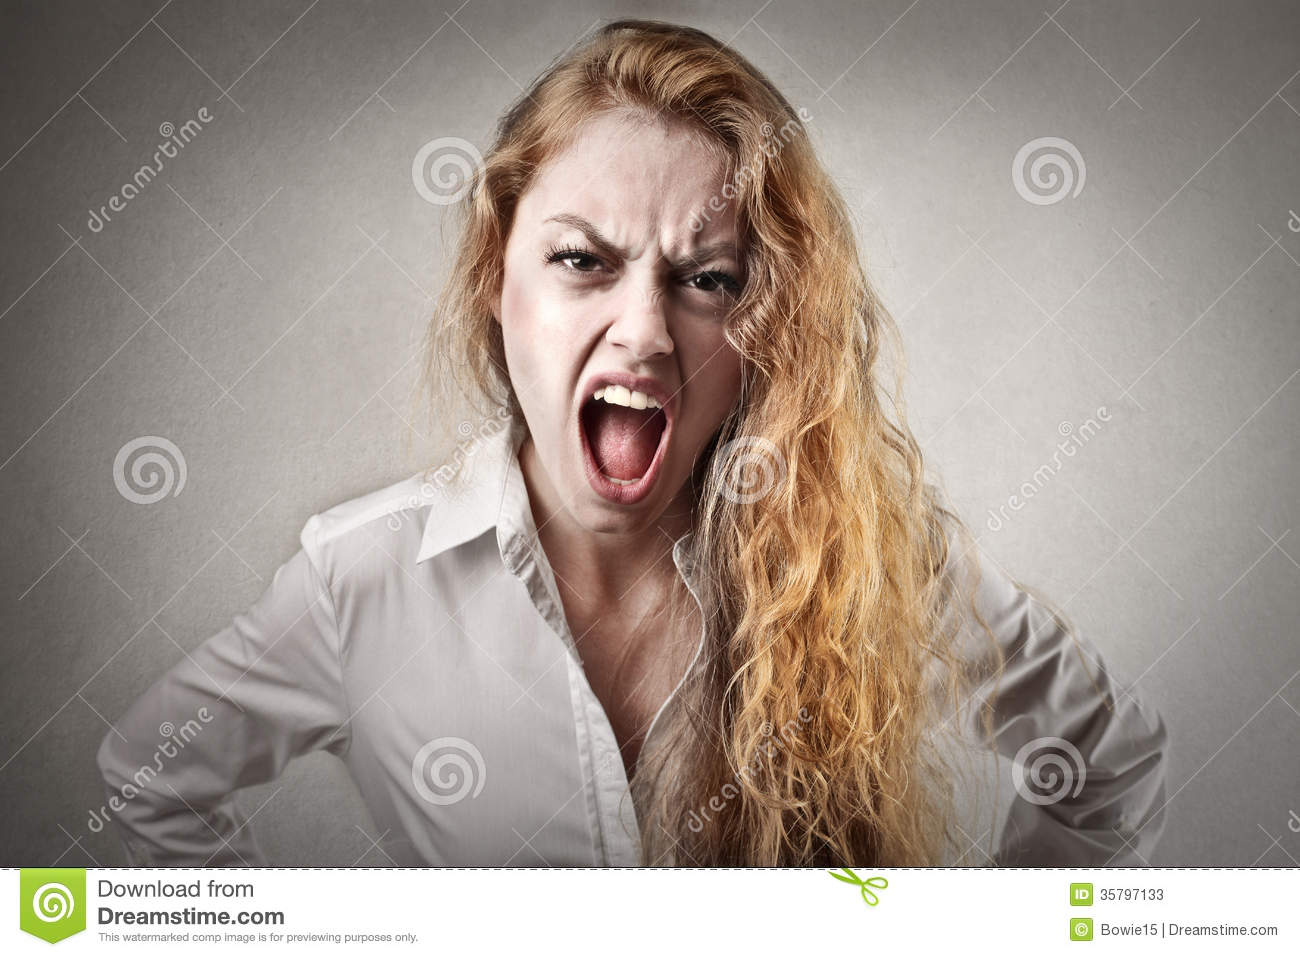 Angry screaming woman stock image. Image of caucasian ...